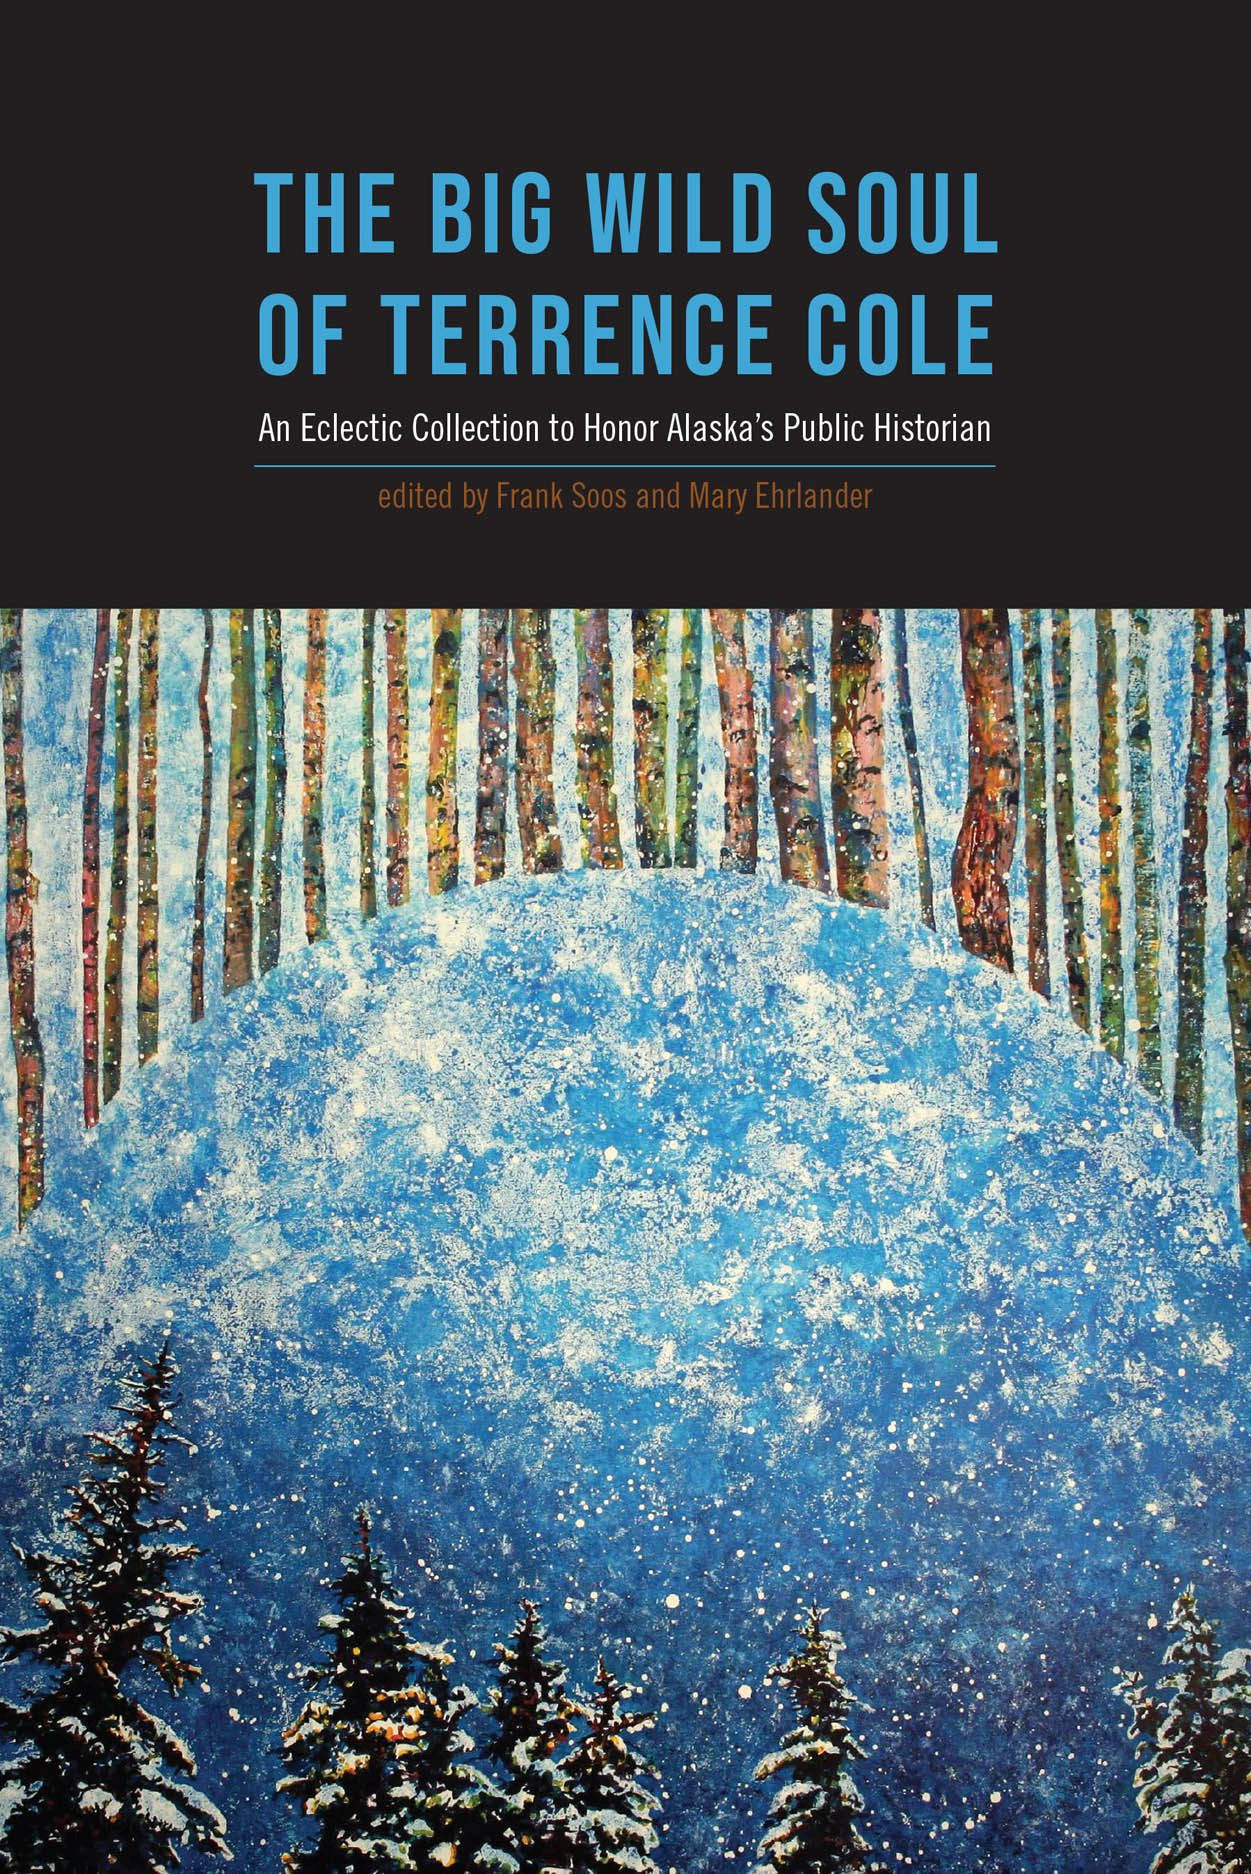 The Big Wild Soul of Terrence Cole